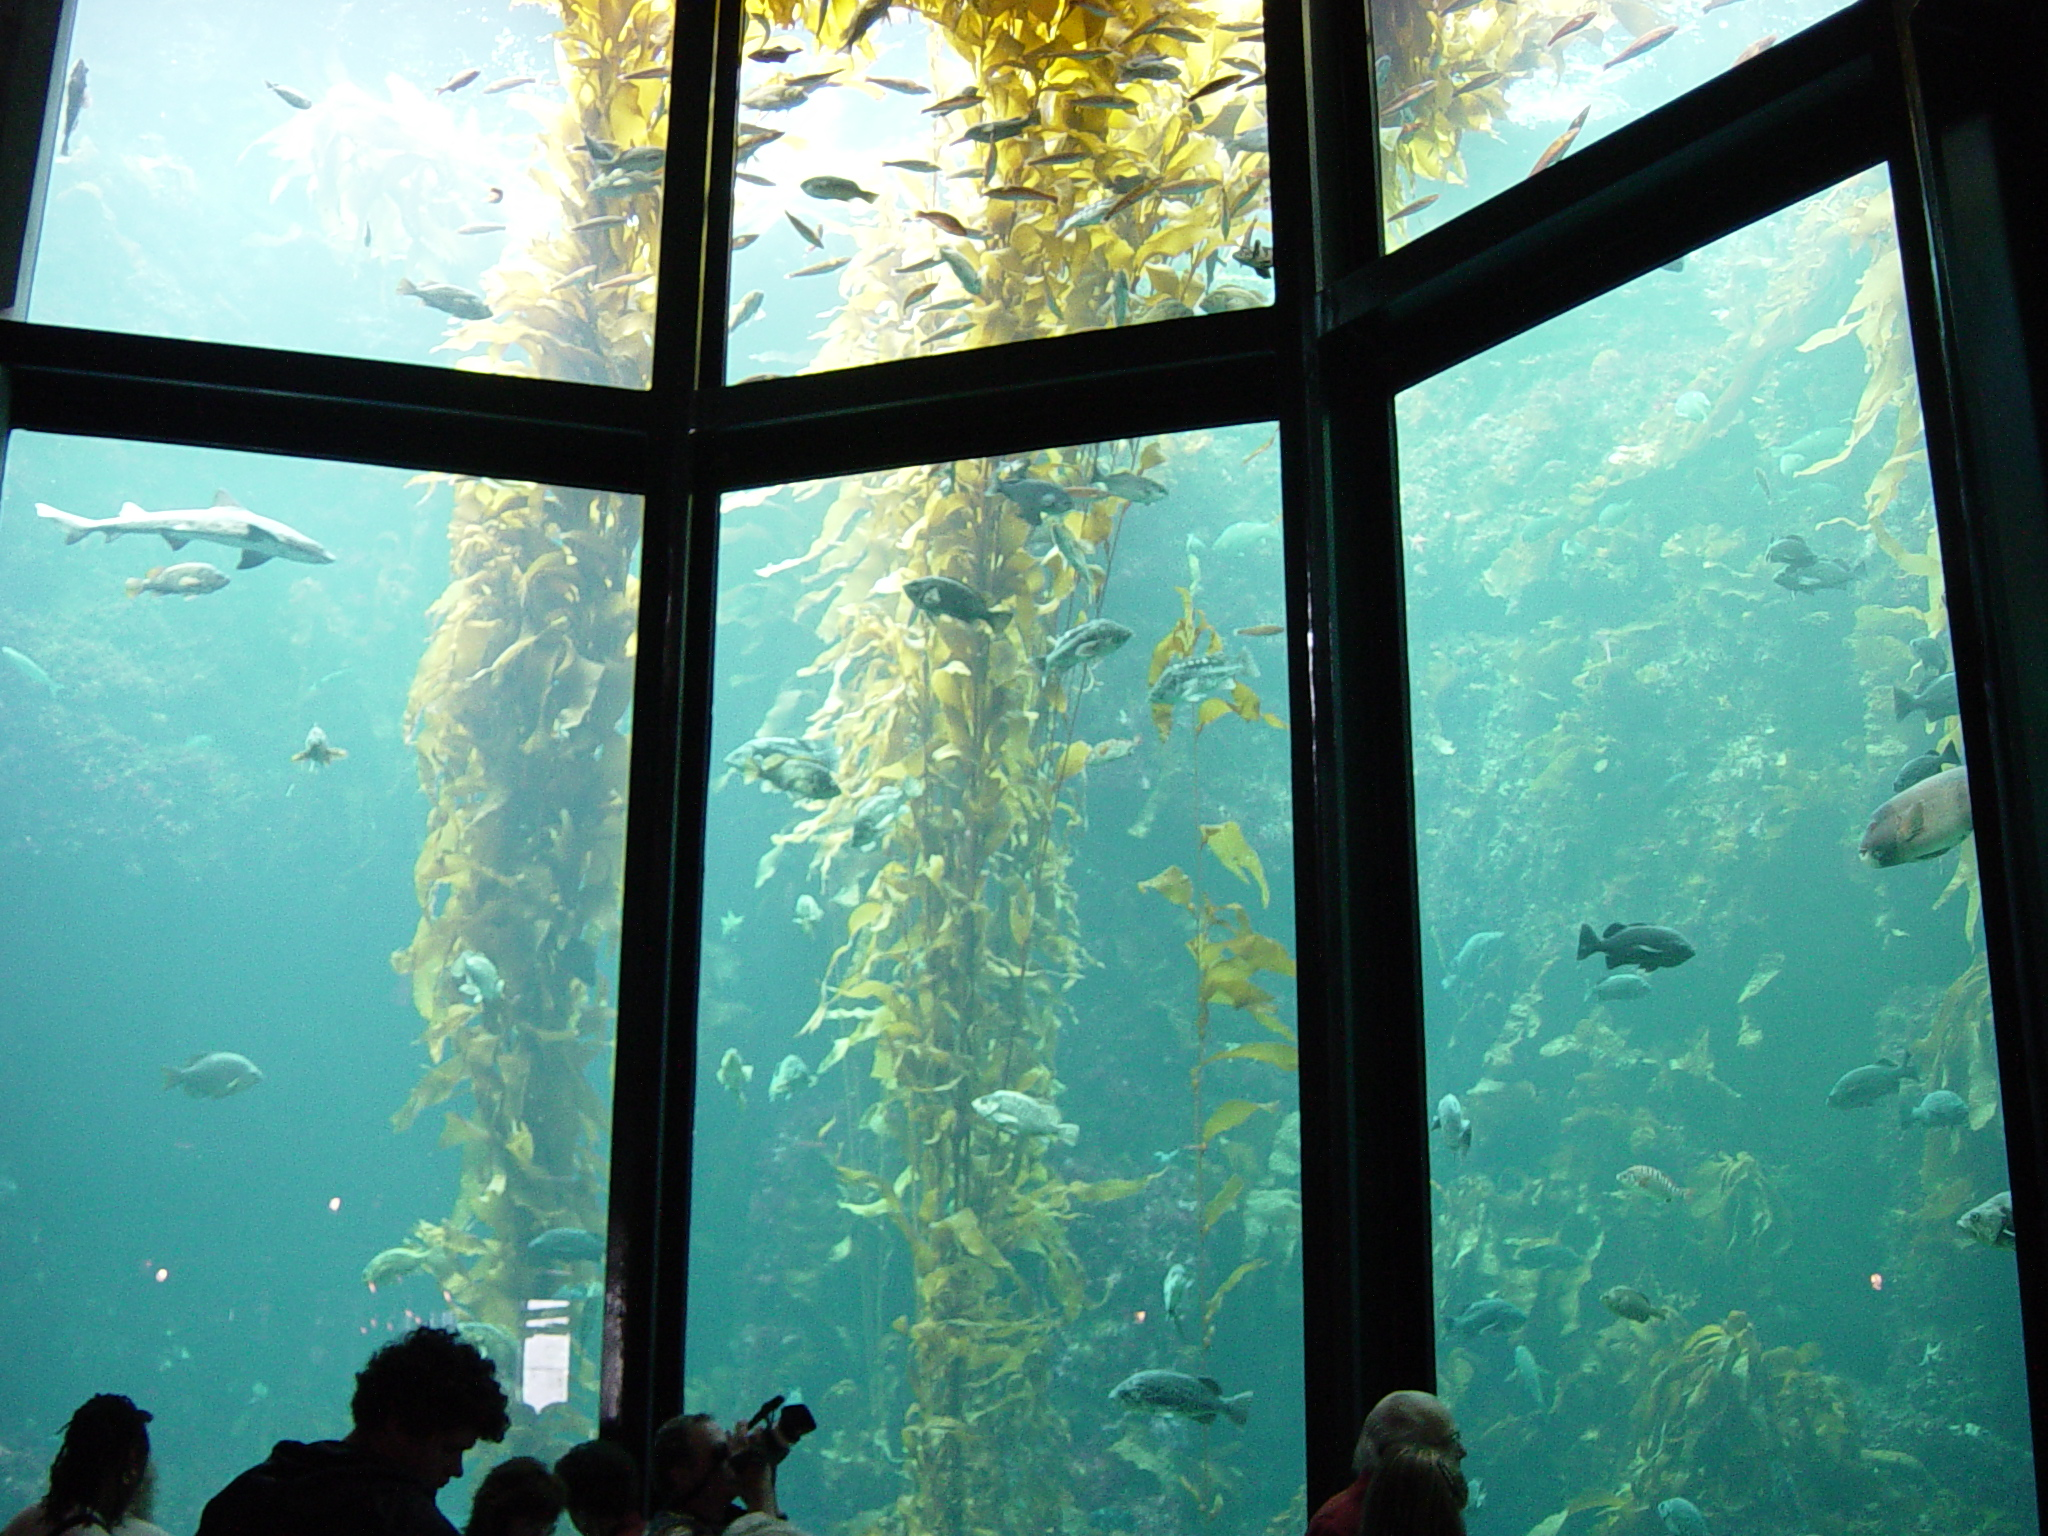 alt=Photo of <!-- convert --> yellow plants in water behind glass wall divided into sections.